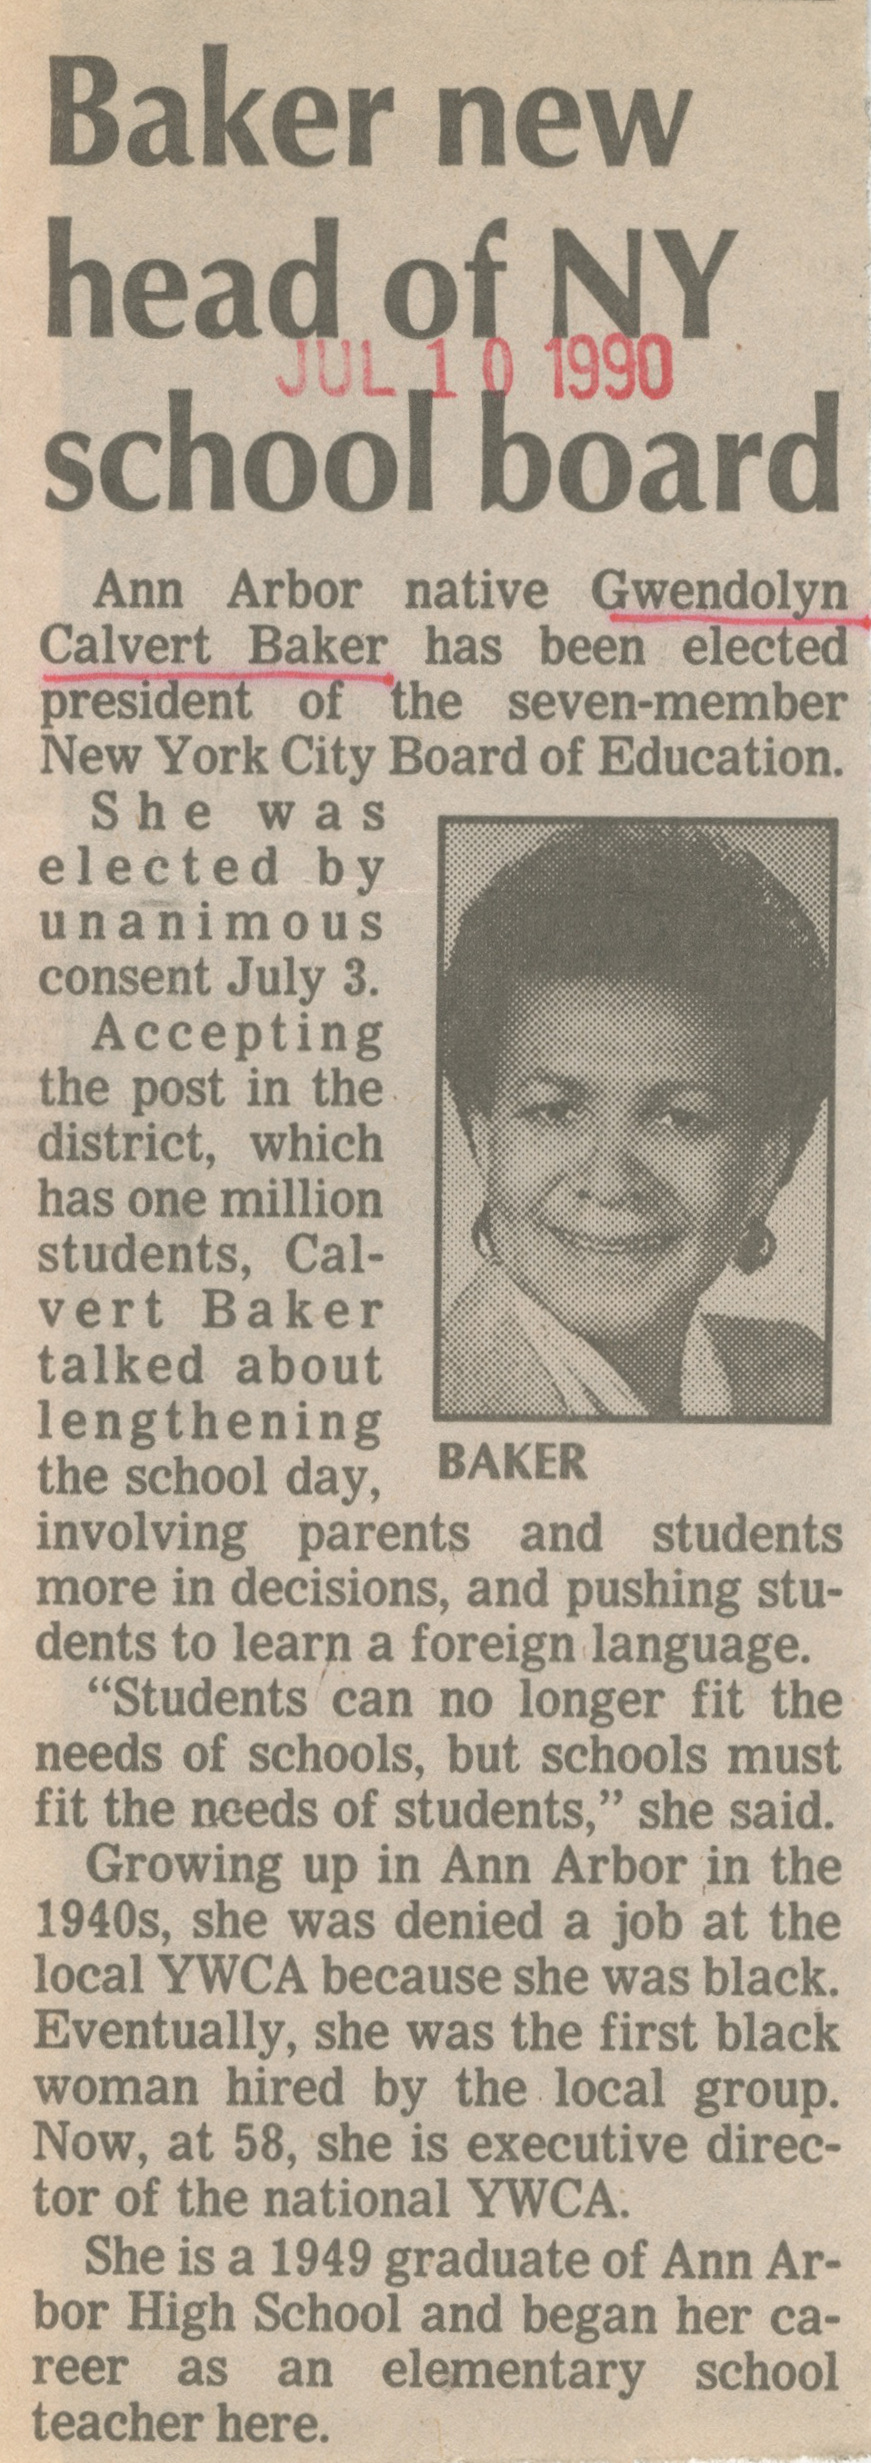 Baker New Head Of NY School Board image